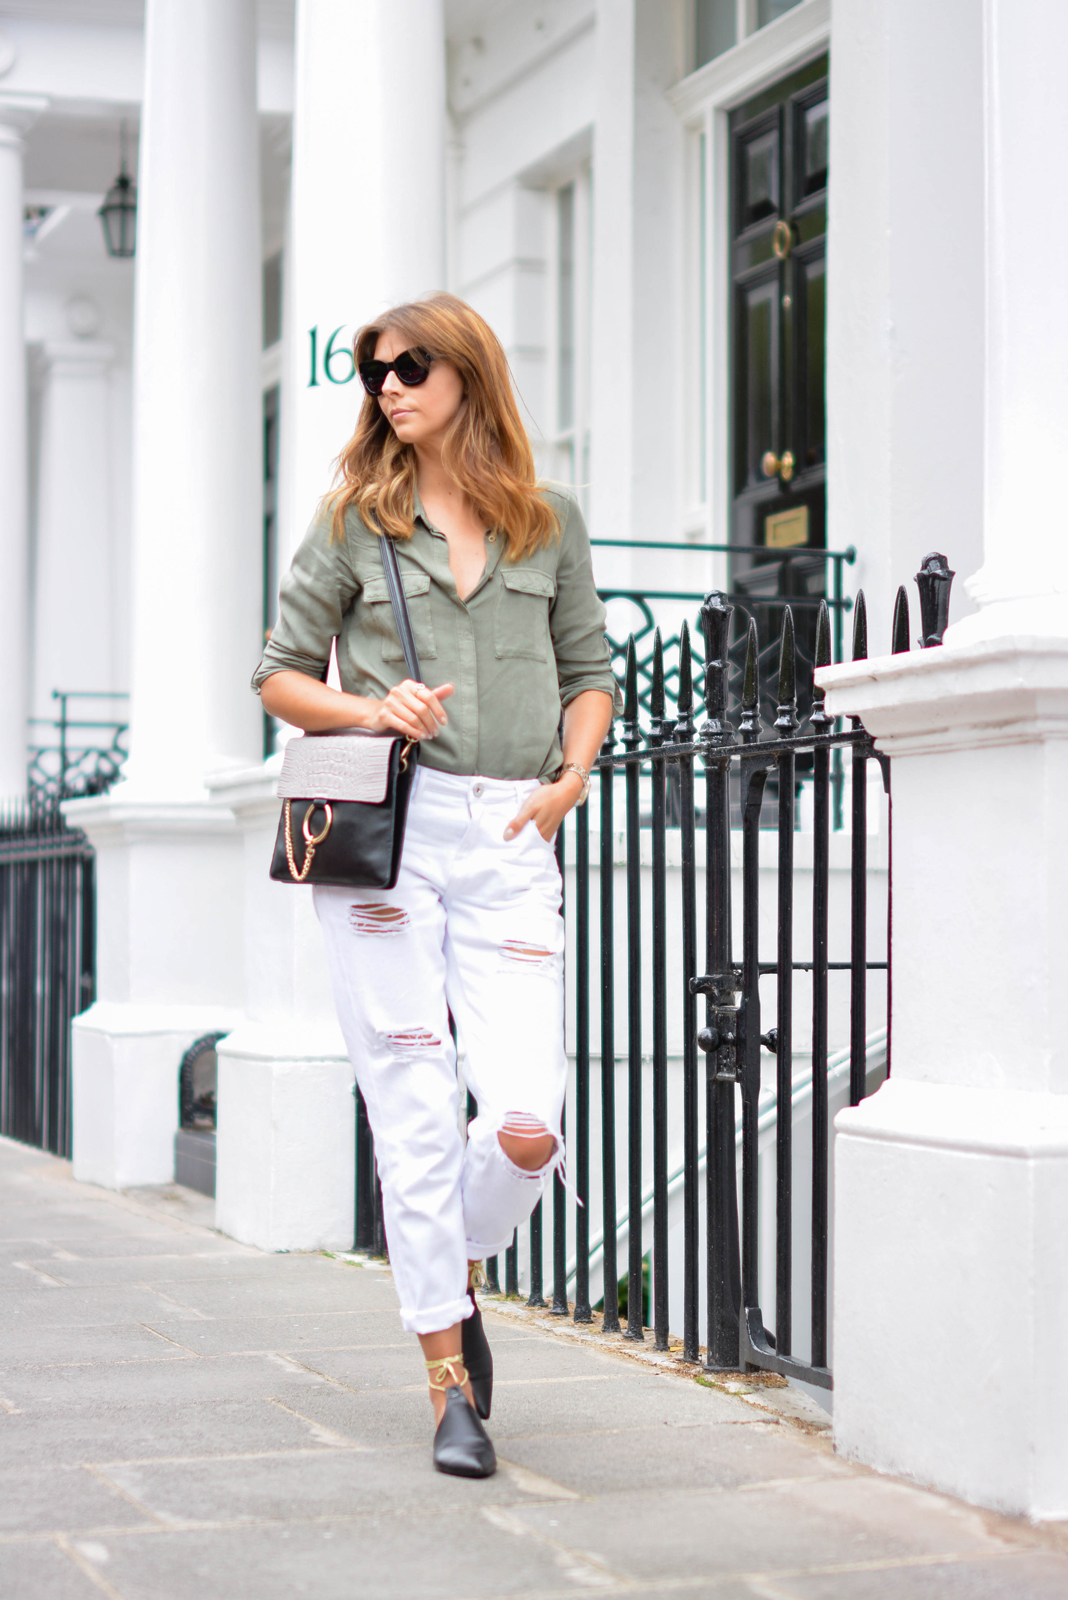 EJSTYLE - Emma Hill wears Chloe Faye dupe style bag, white ripped boyfriend jeans, khaki shirt, chanel style black mules flat shoes with gold ankle ties, chunky black cats eye sunglasses, OOTD, street style